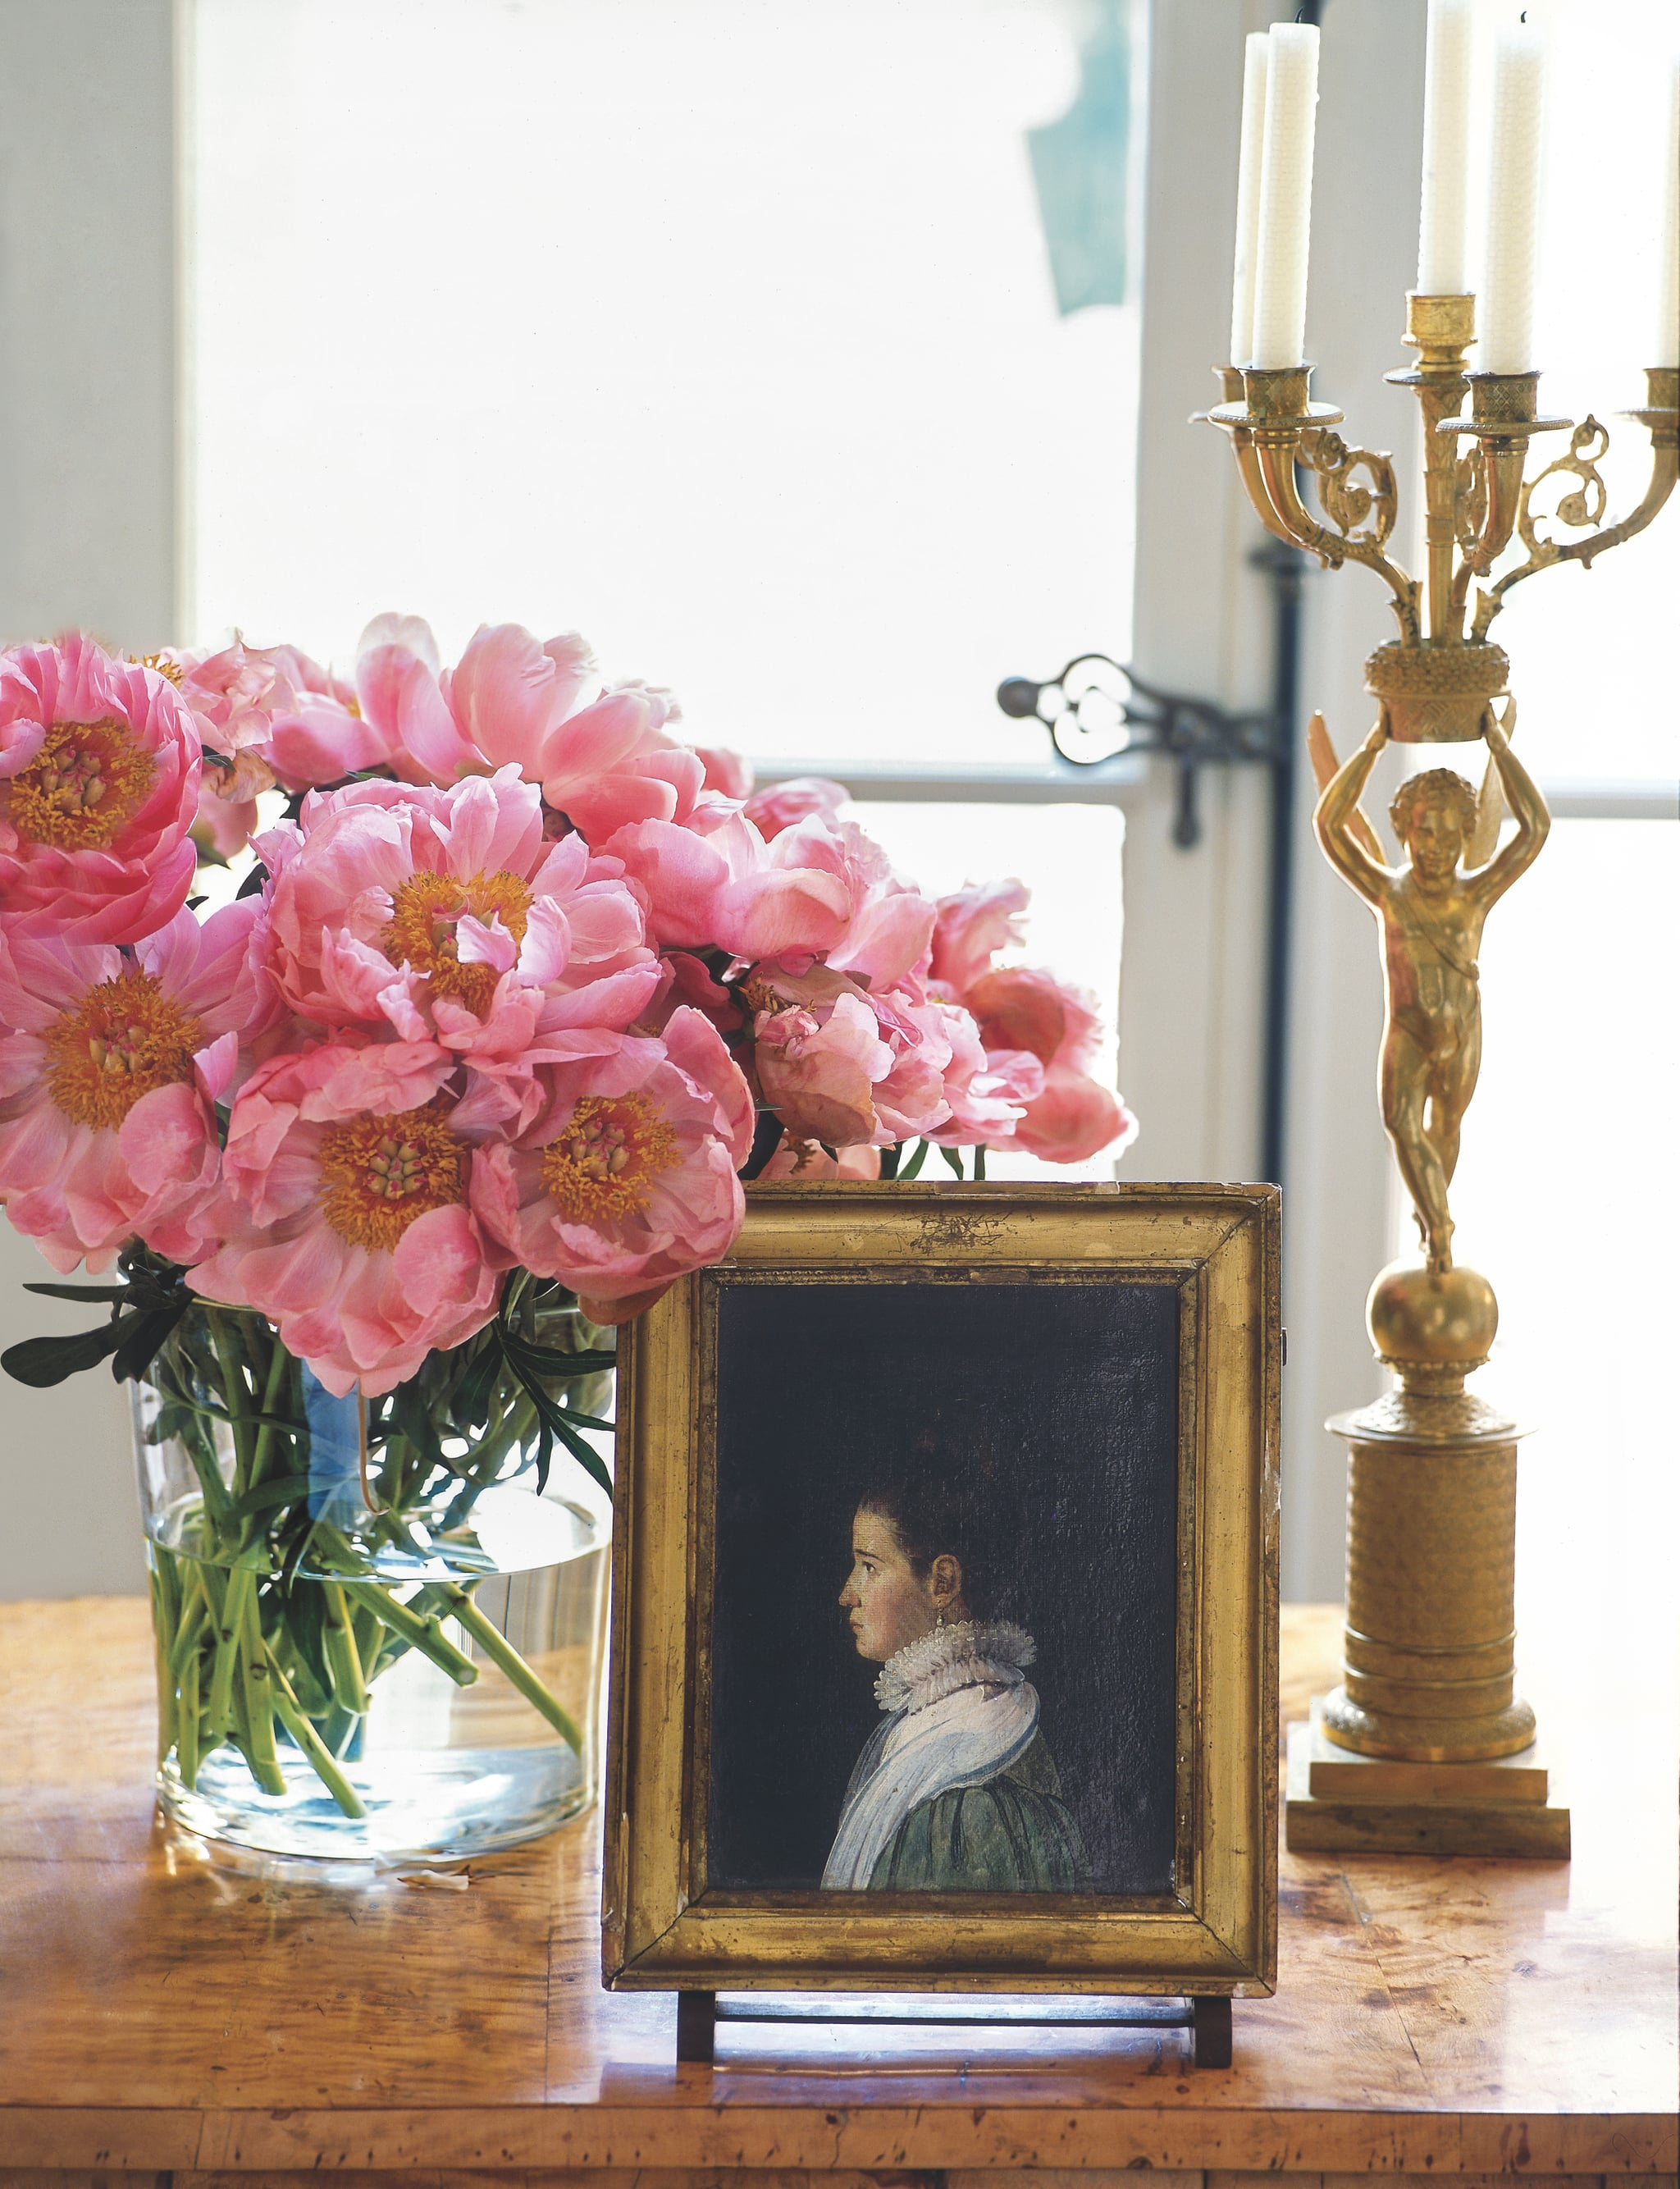 How to decorate home with flowers - Clinton Smith On How To Decorate With Flowers On A Budget Popsugar Home